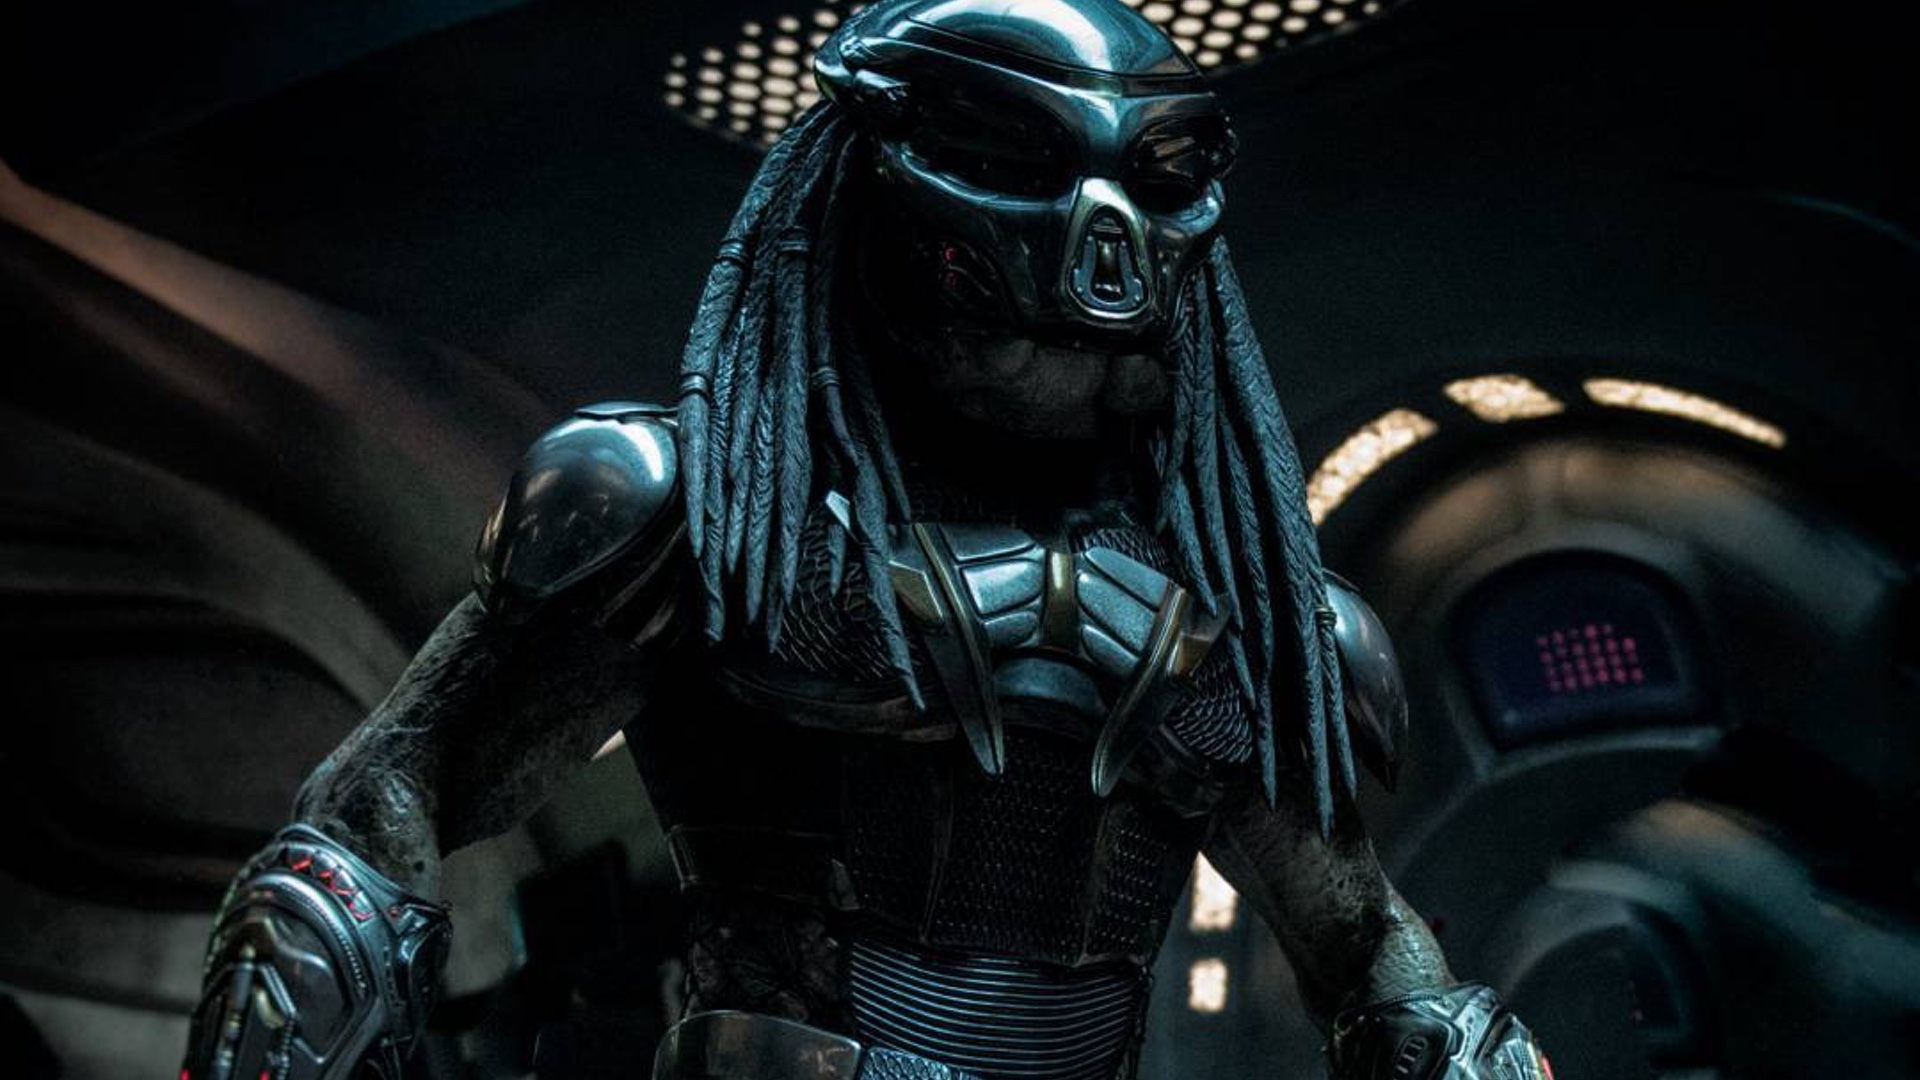 So I Saw The Predator Last Night I Was Really Excited About This Movie Im Such A Huge Fan Of The Franchise And I Was Hoping So Badly That It Would Be